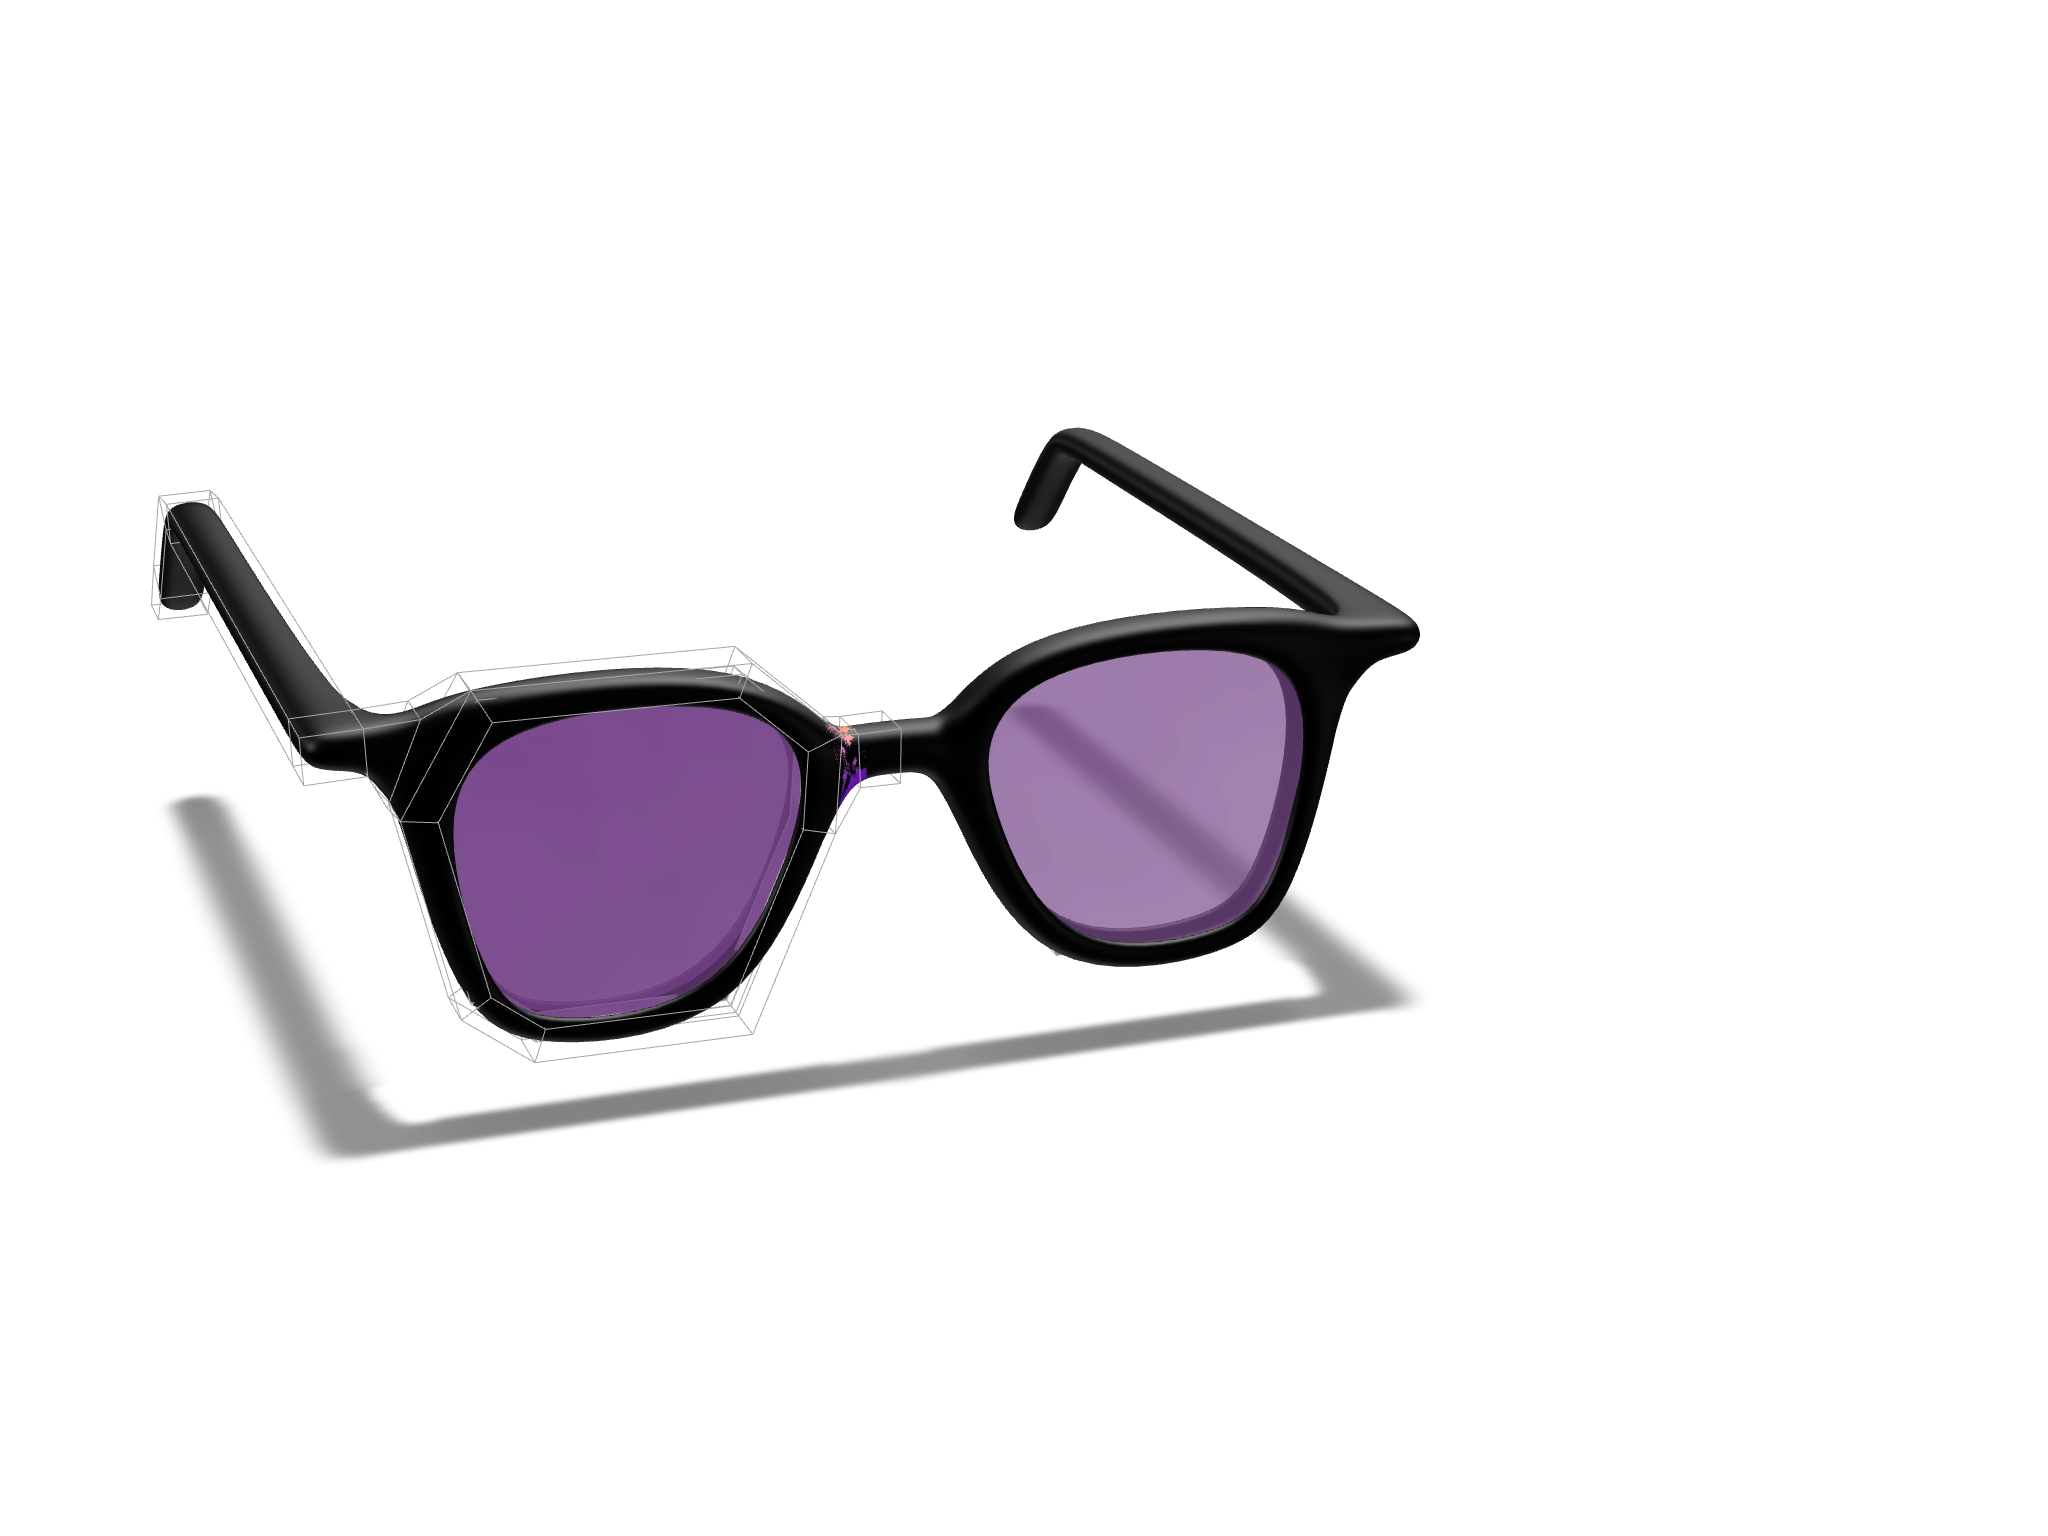 glasses2 - 3D design by Jacob Tran on Feb 15, 2018